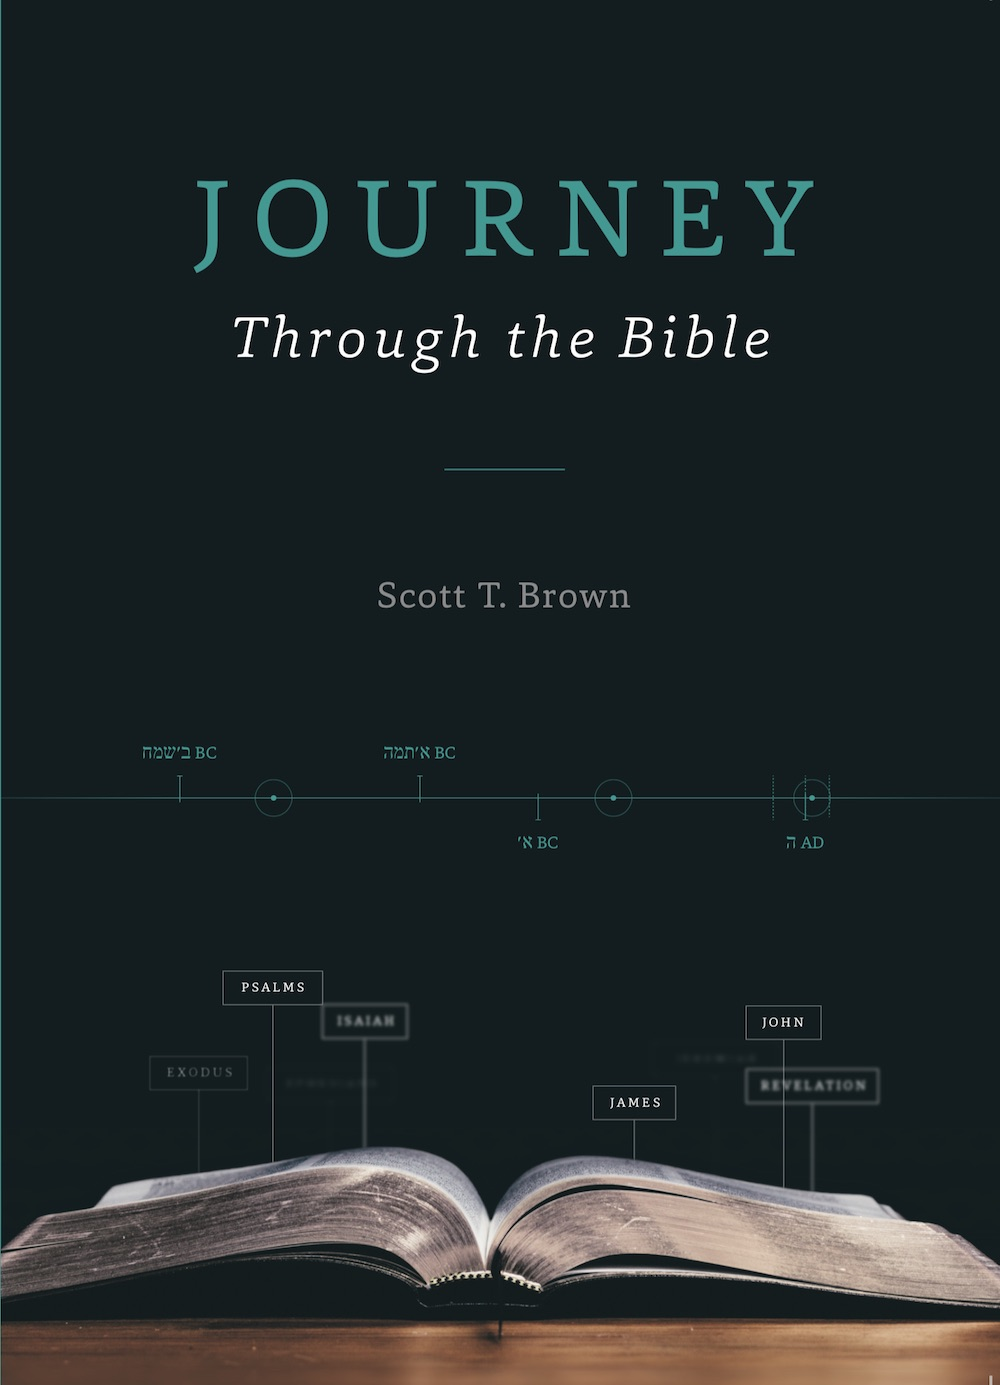 A Great Resource for Family Bible Study